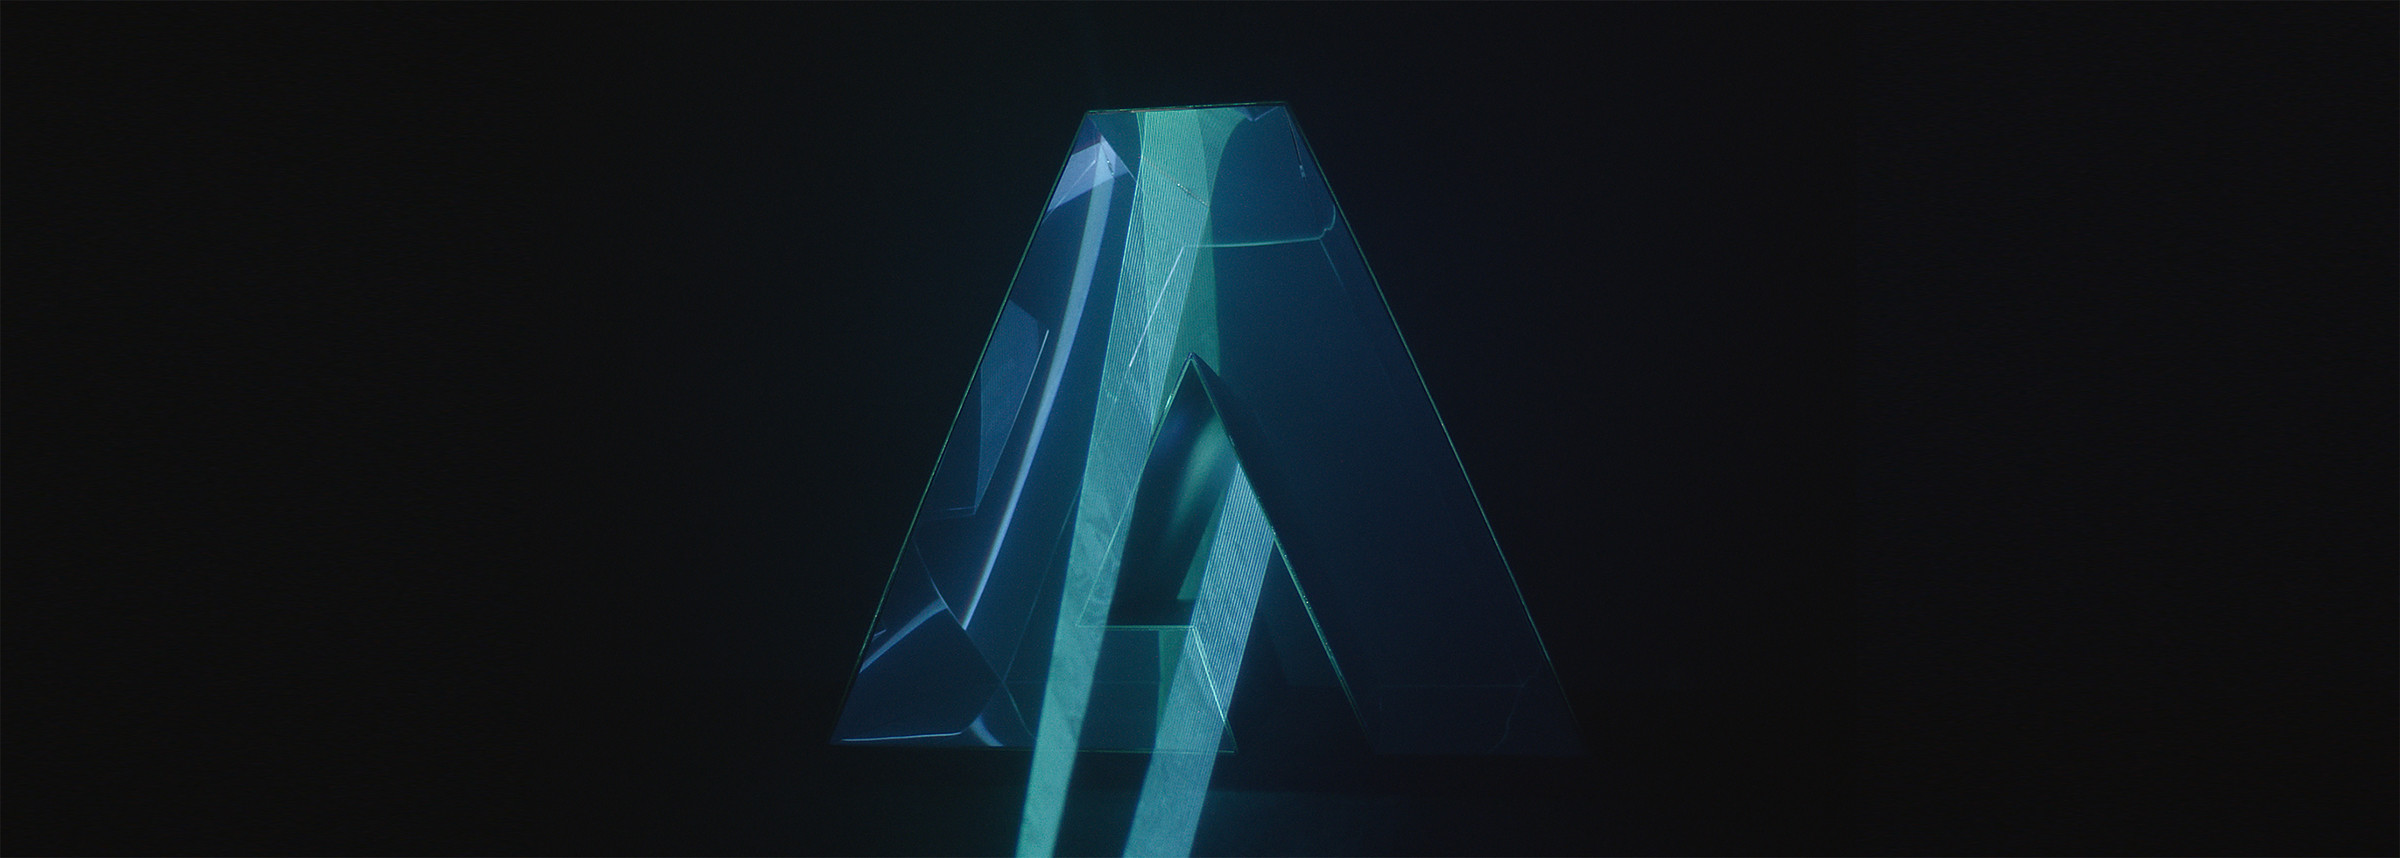 Adobe logo Remix